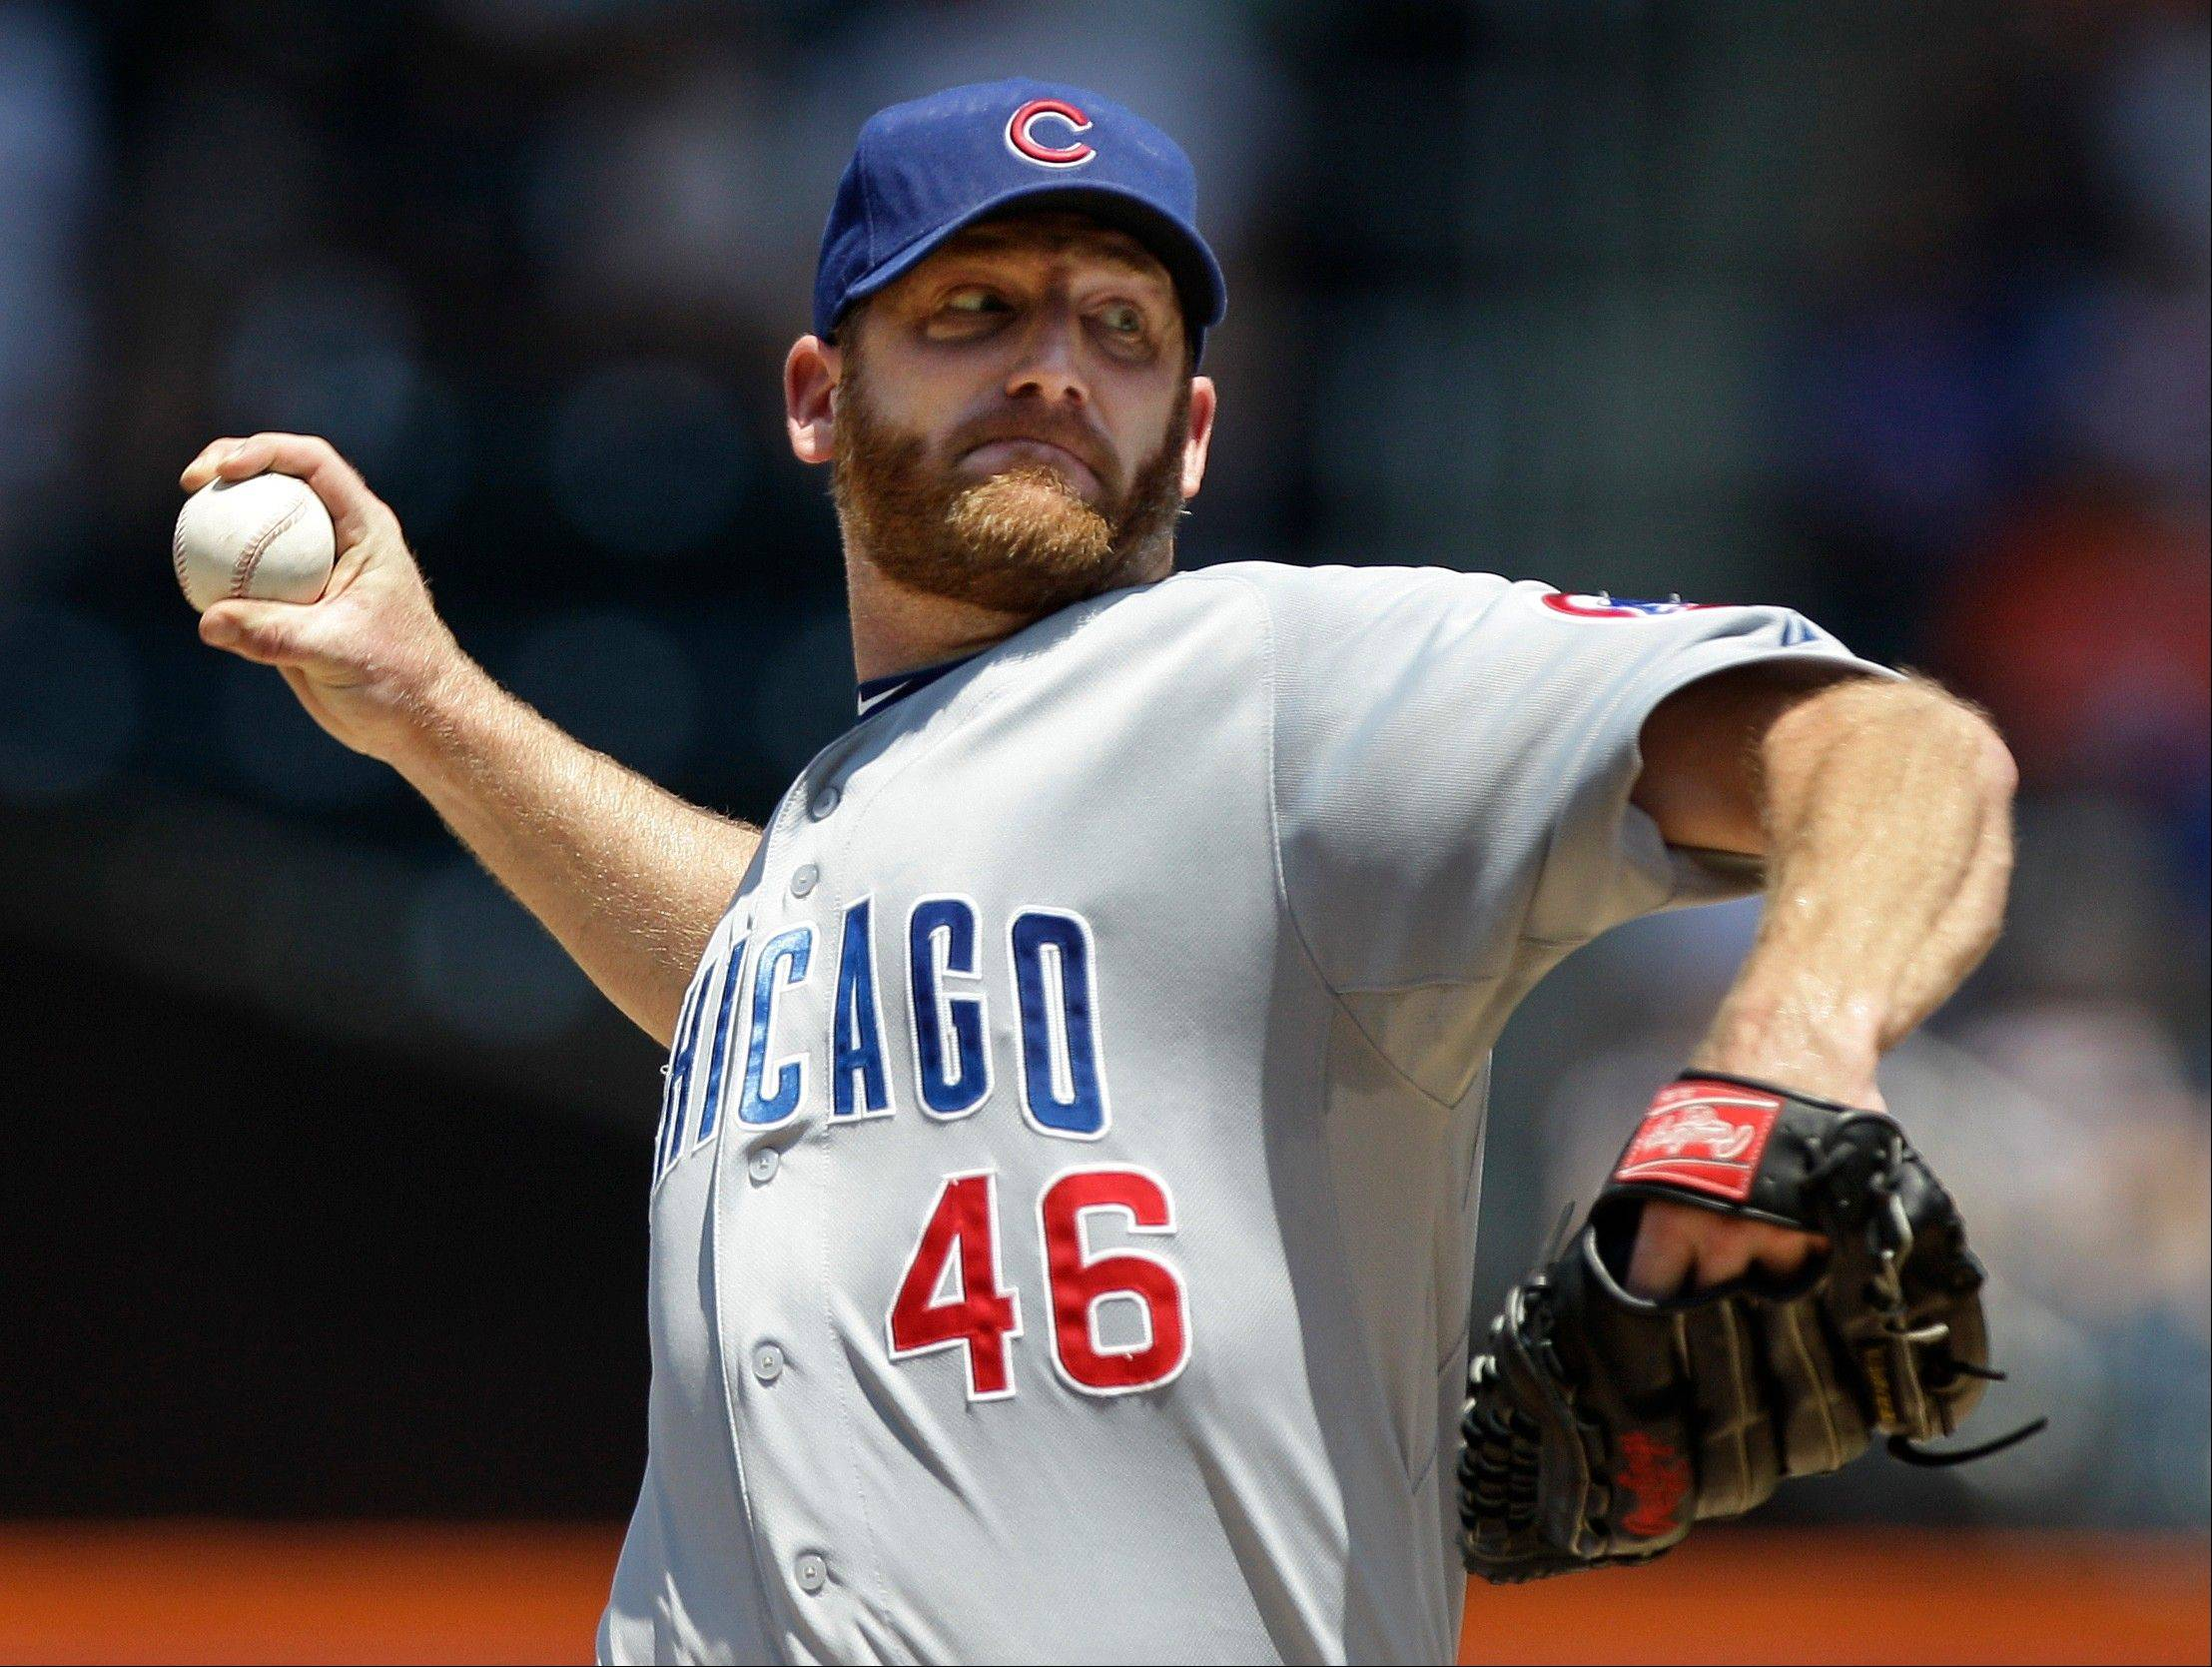 With trade talk heating up, could Ryan Dempster be making his last start for the Cubs when he faces the Diamondbacks on Saturday?